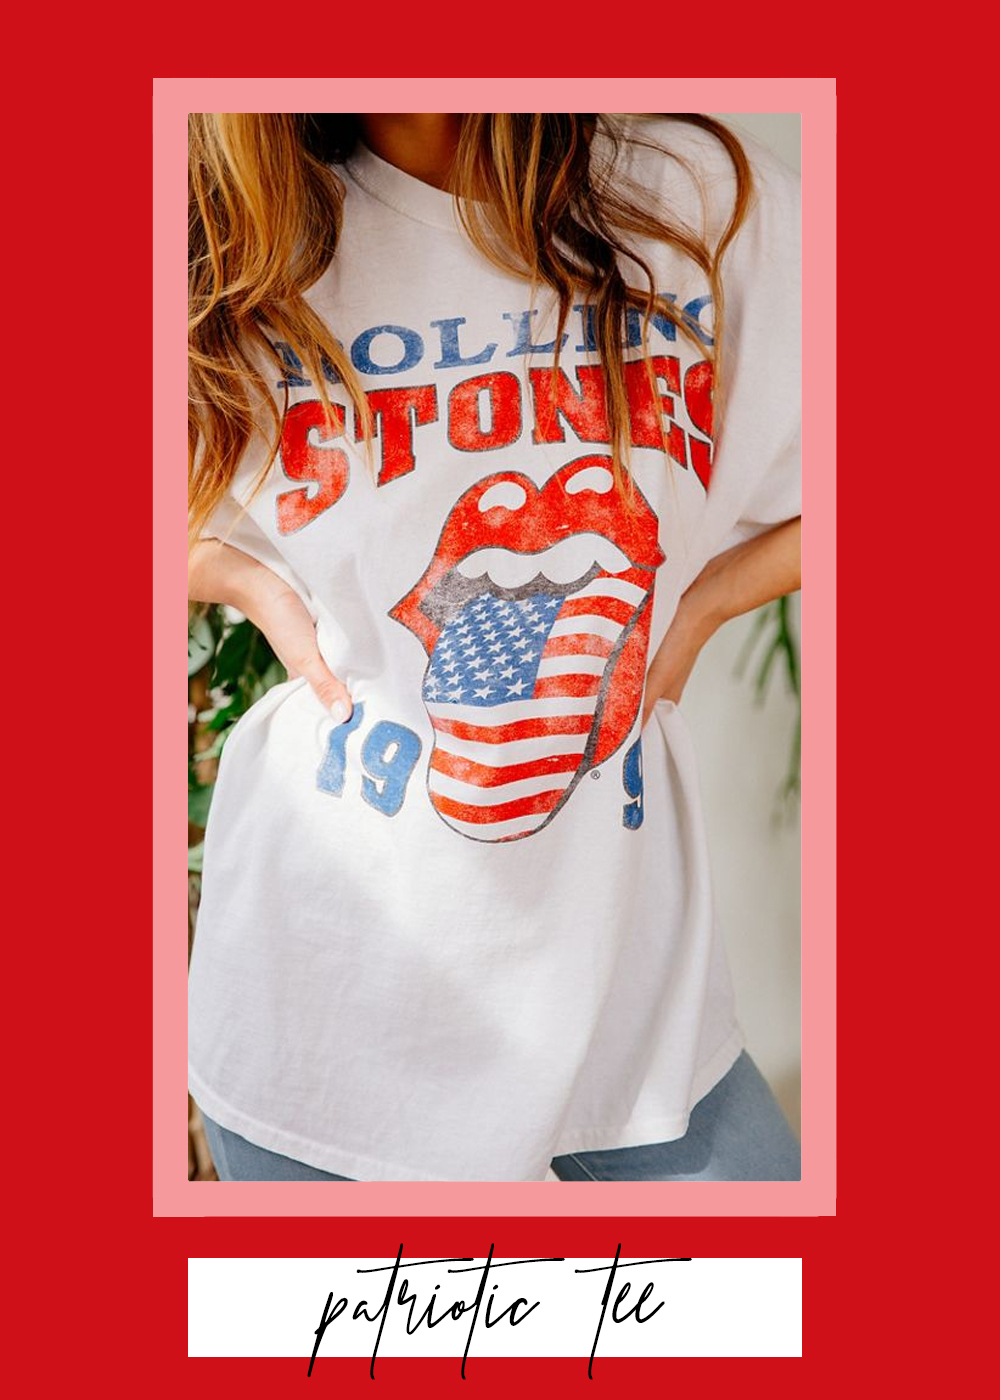 007. - Rolling Stones Tee // $39Urban Outfitters